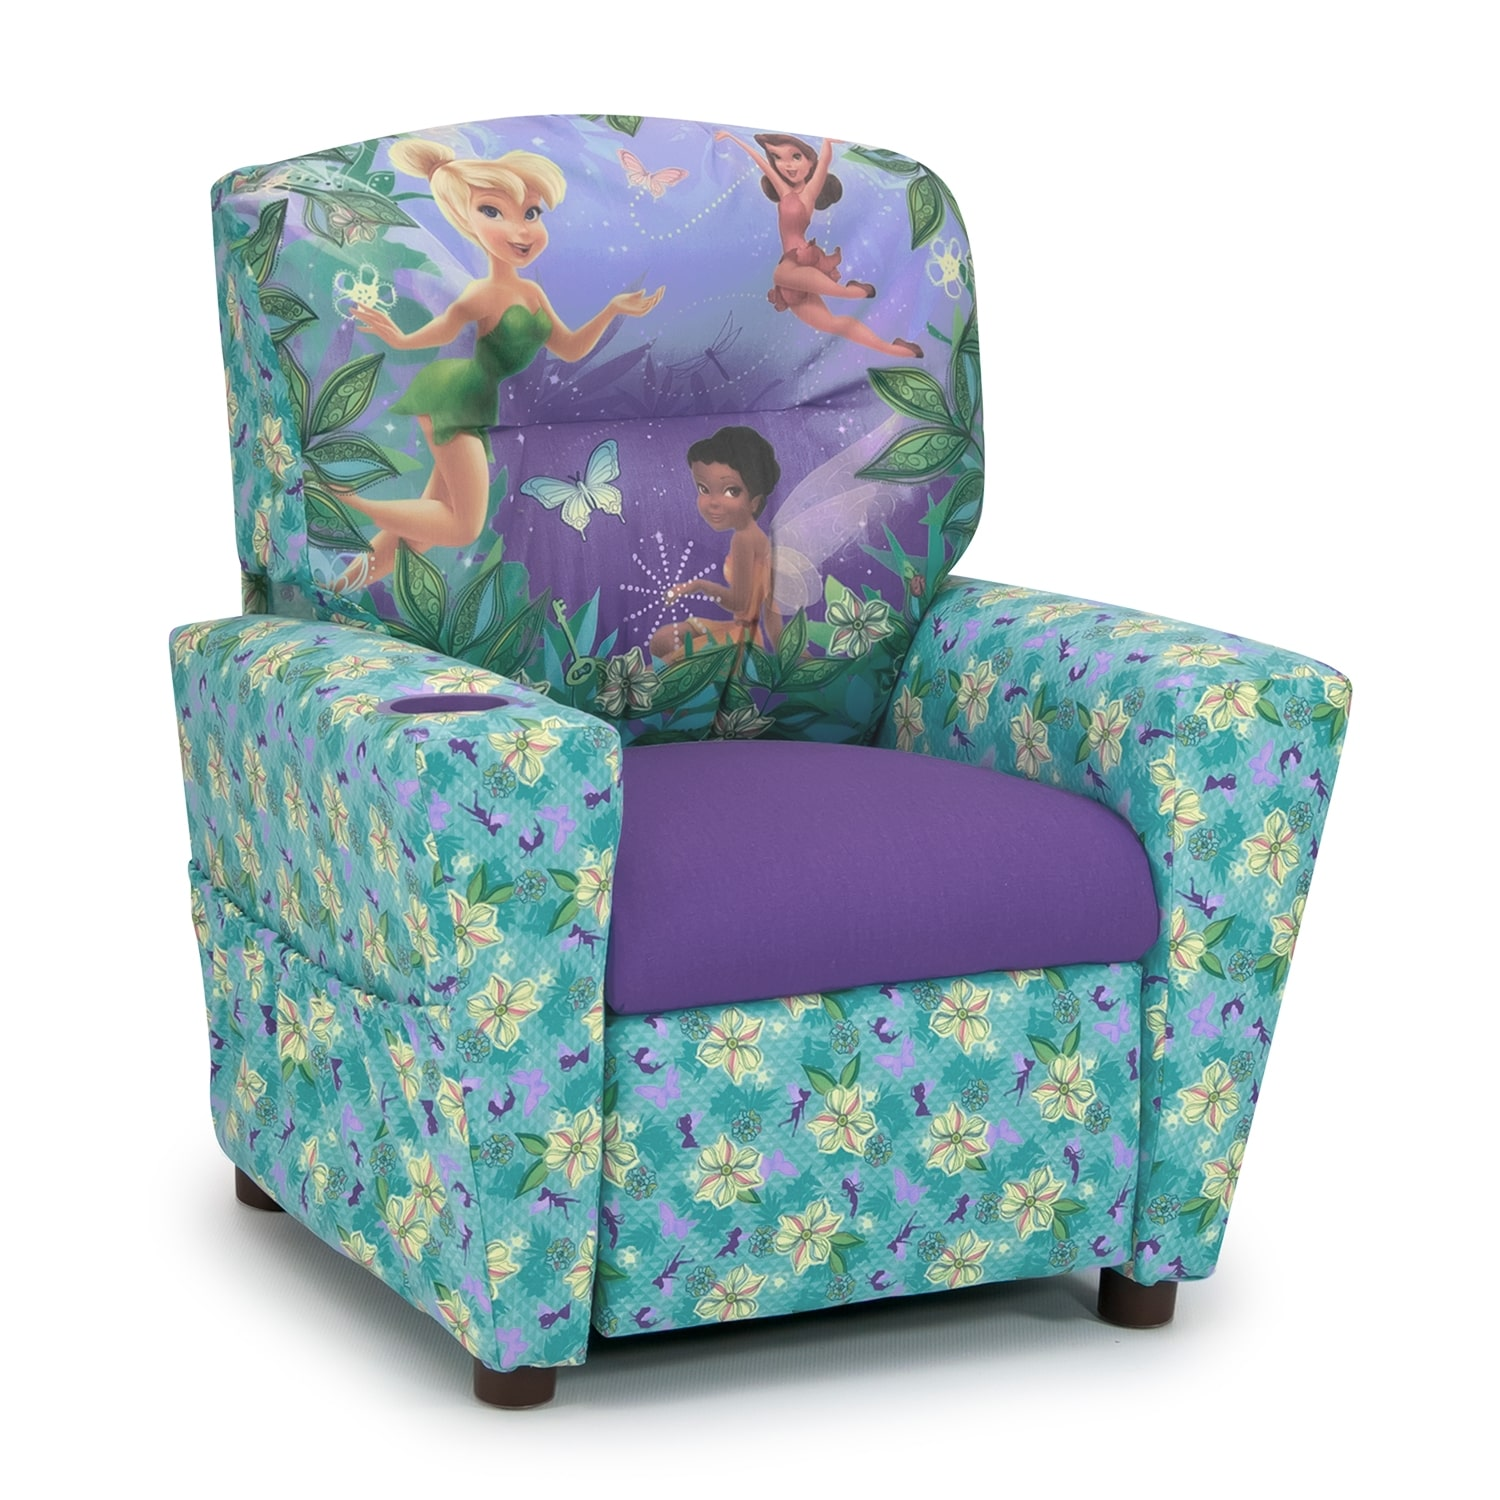 Kids Furniture - Disney Fairies Child's Recliner